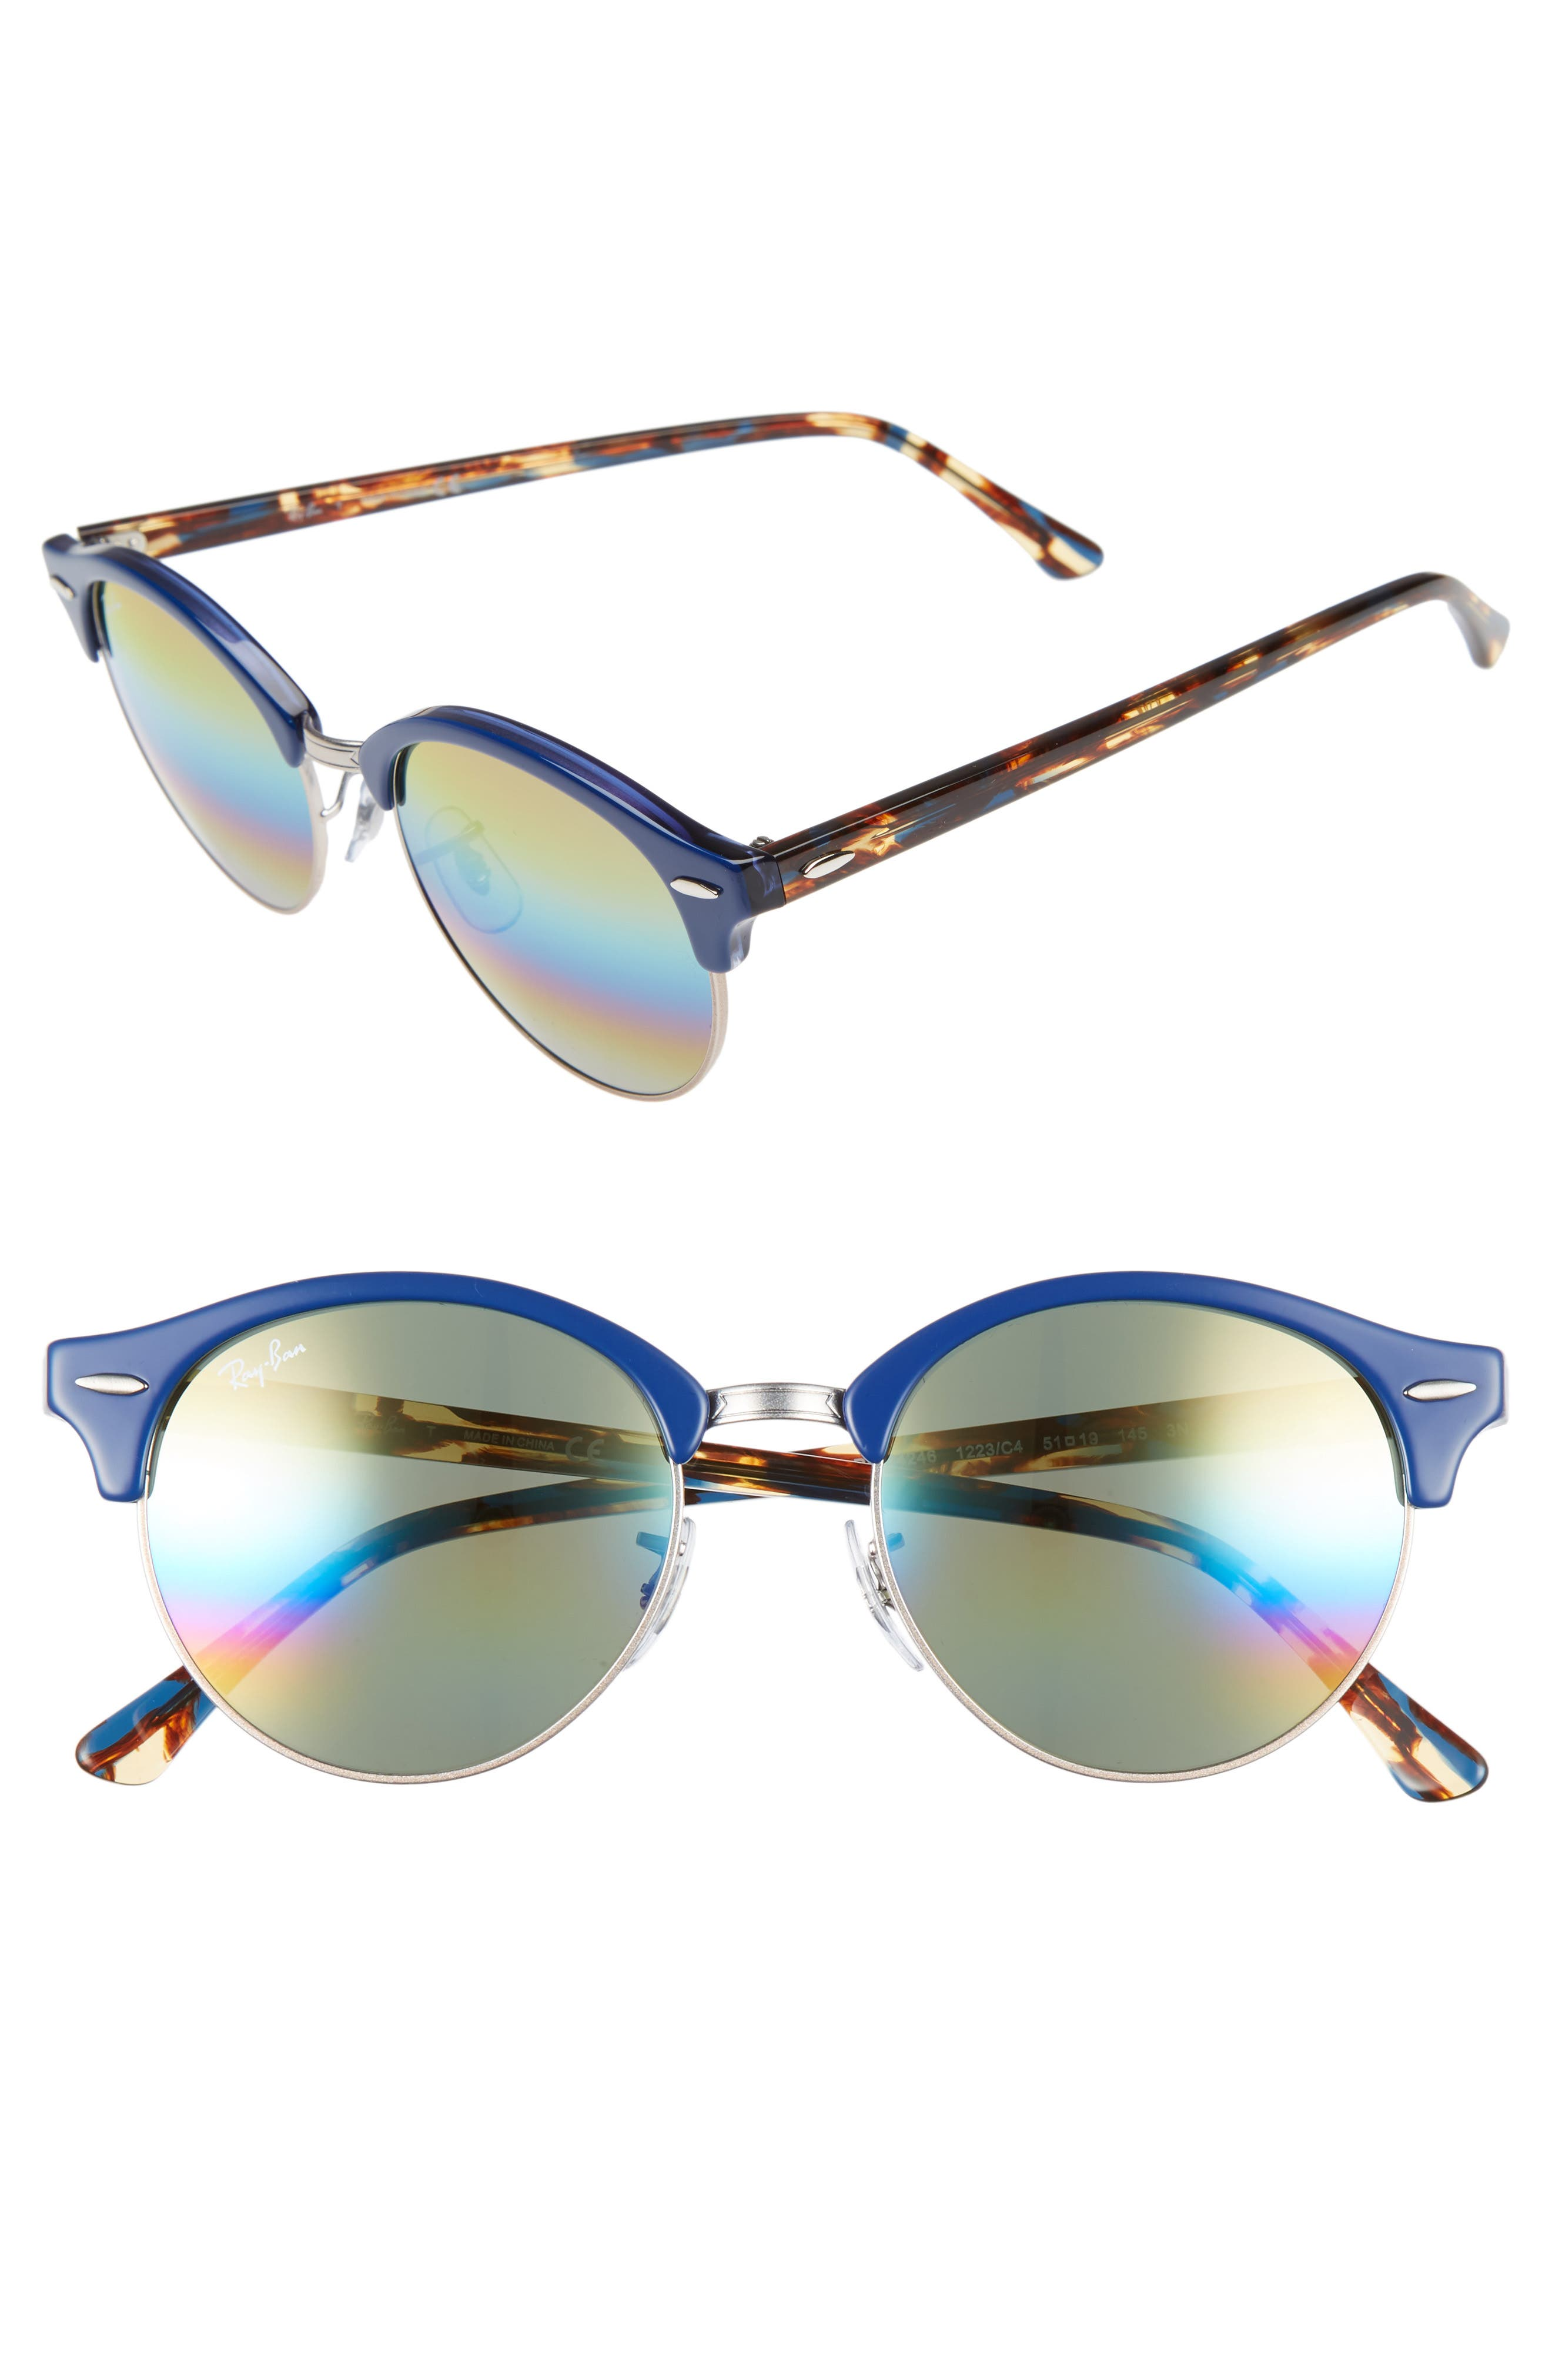 Image of Ray-Ban 51mm Icons Clubround Phantos Sunglasses